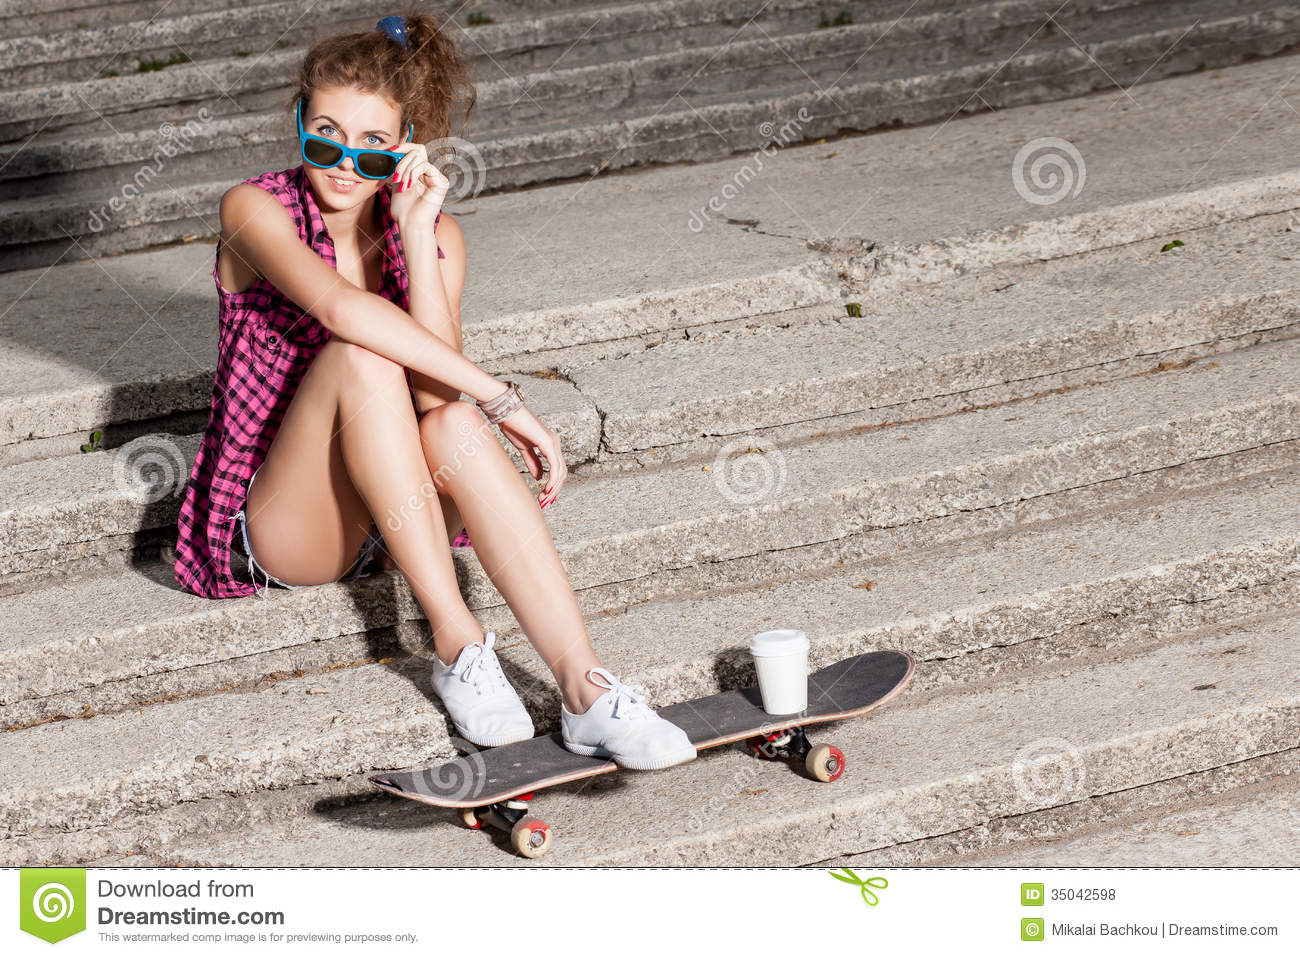 Sorry, all young girl spreads legs on stairs confirm. happens